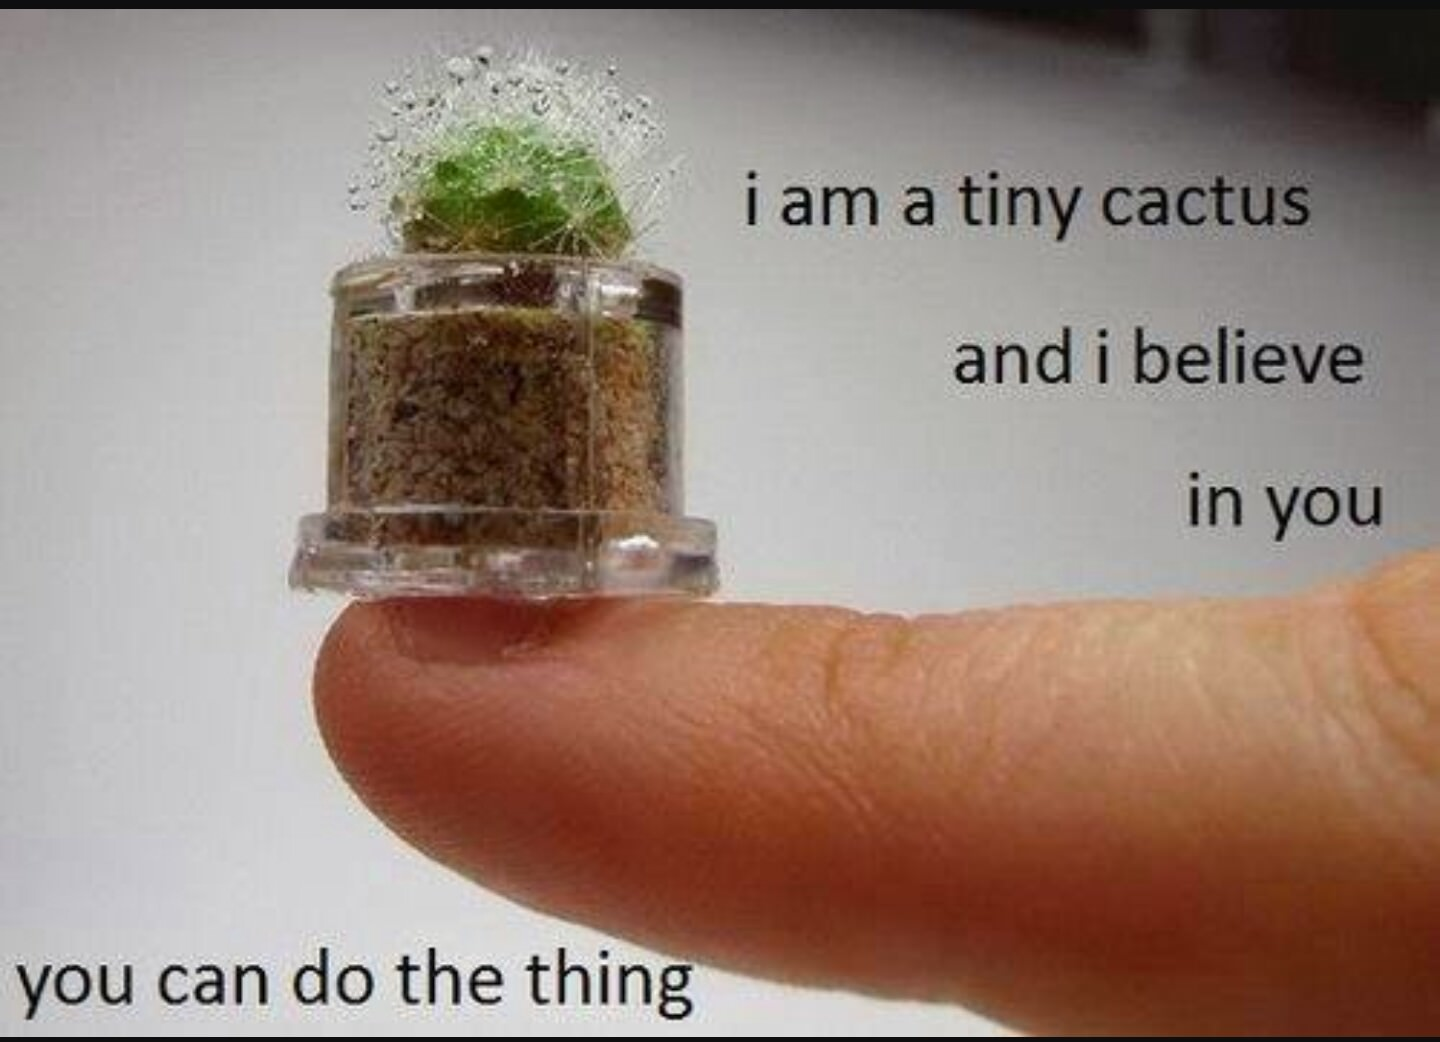 NaNo17 :: The Myth of the Tiny Cactus